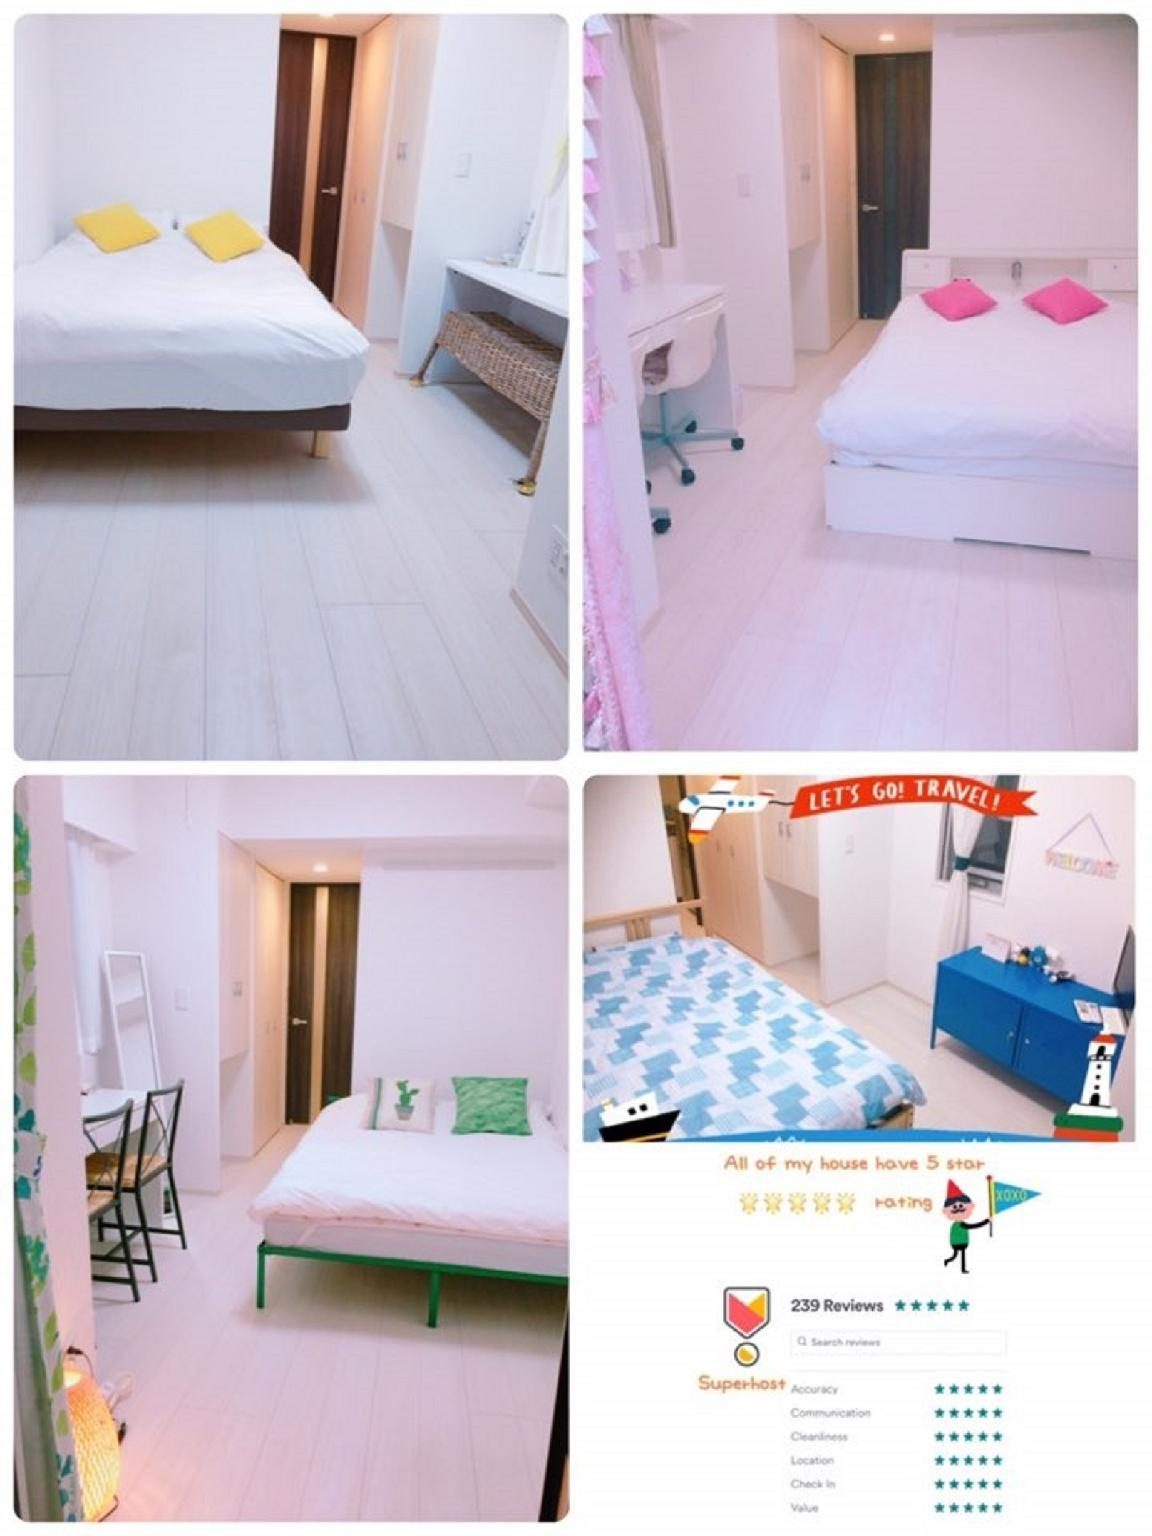 4. Lovely Stay Yuni + Free 2wifi  House And Pocket